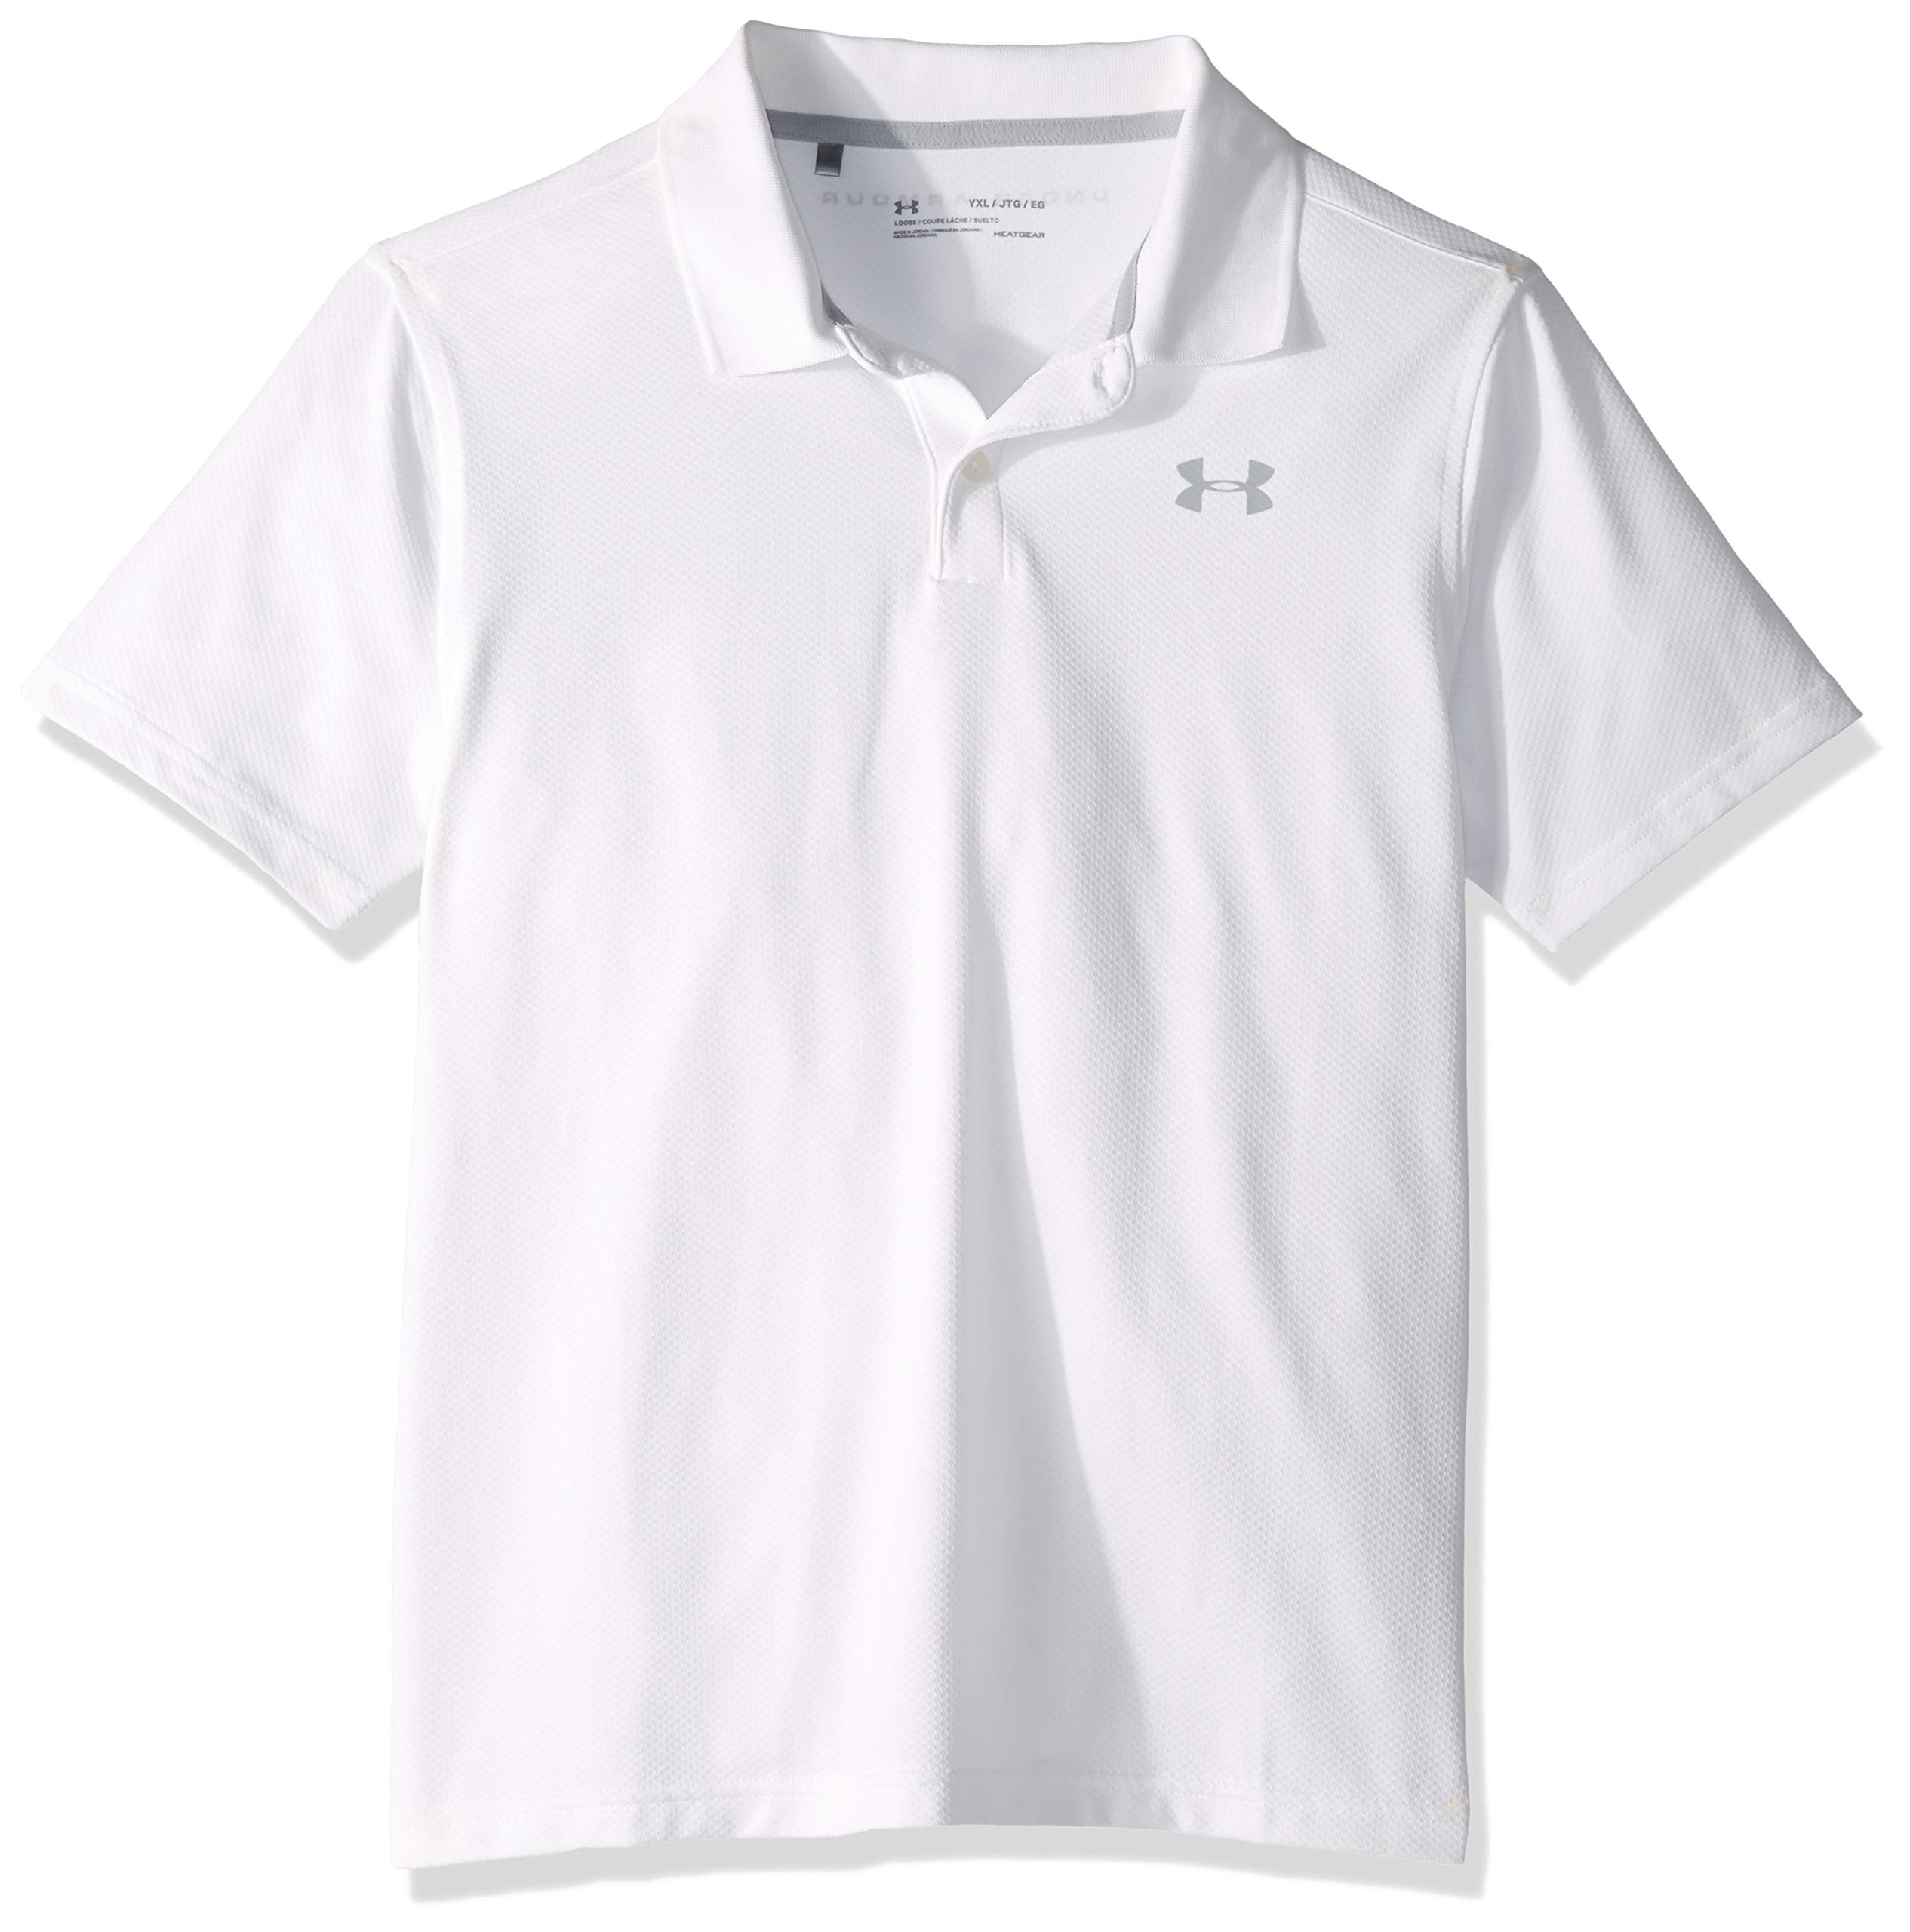 Under Armour Performance Polo 2.0, White//Mod Gray, Youth X-Small